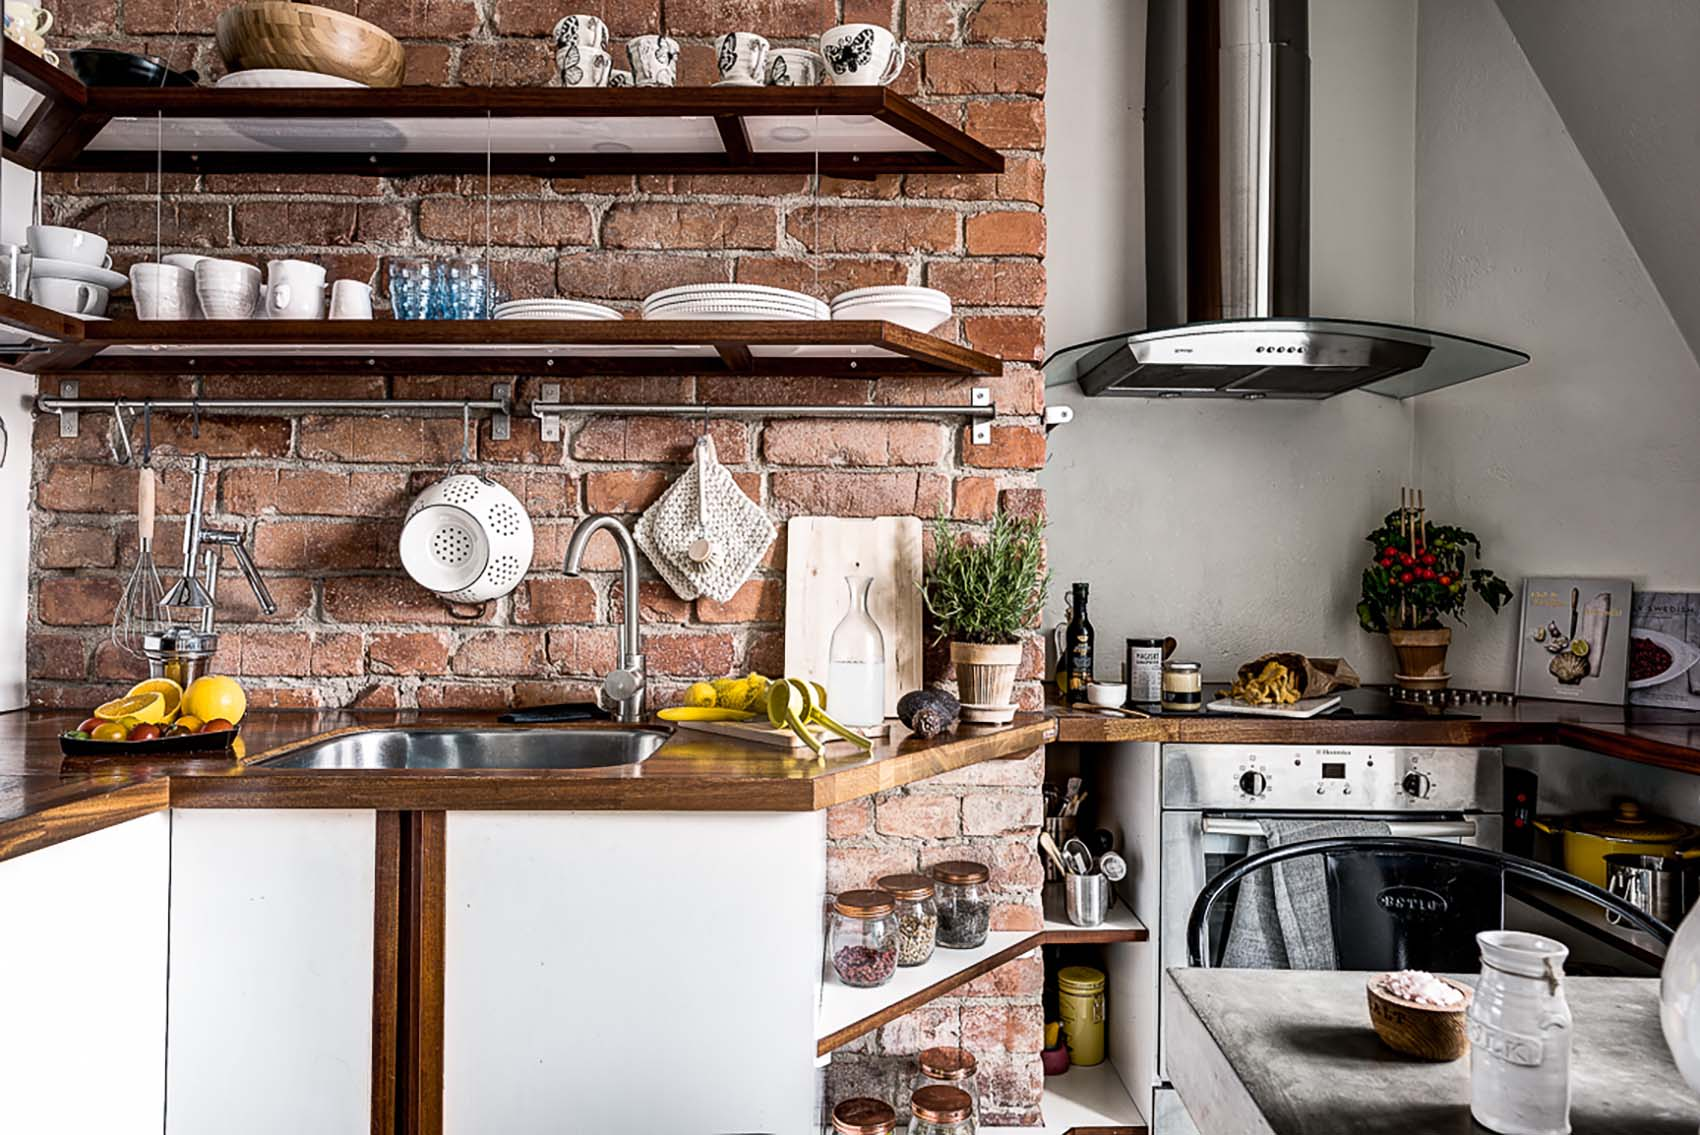 Small rustic kitchen featuring red brick backsplash wall, white cabinets and wood countertops.